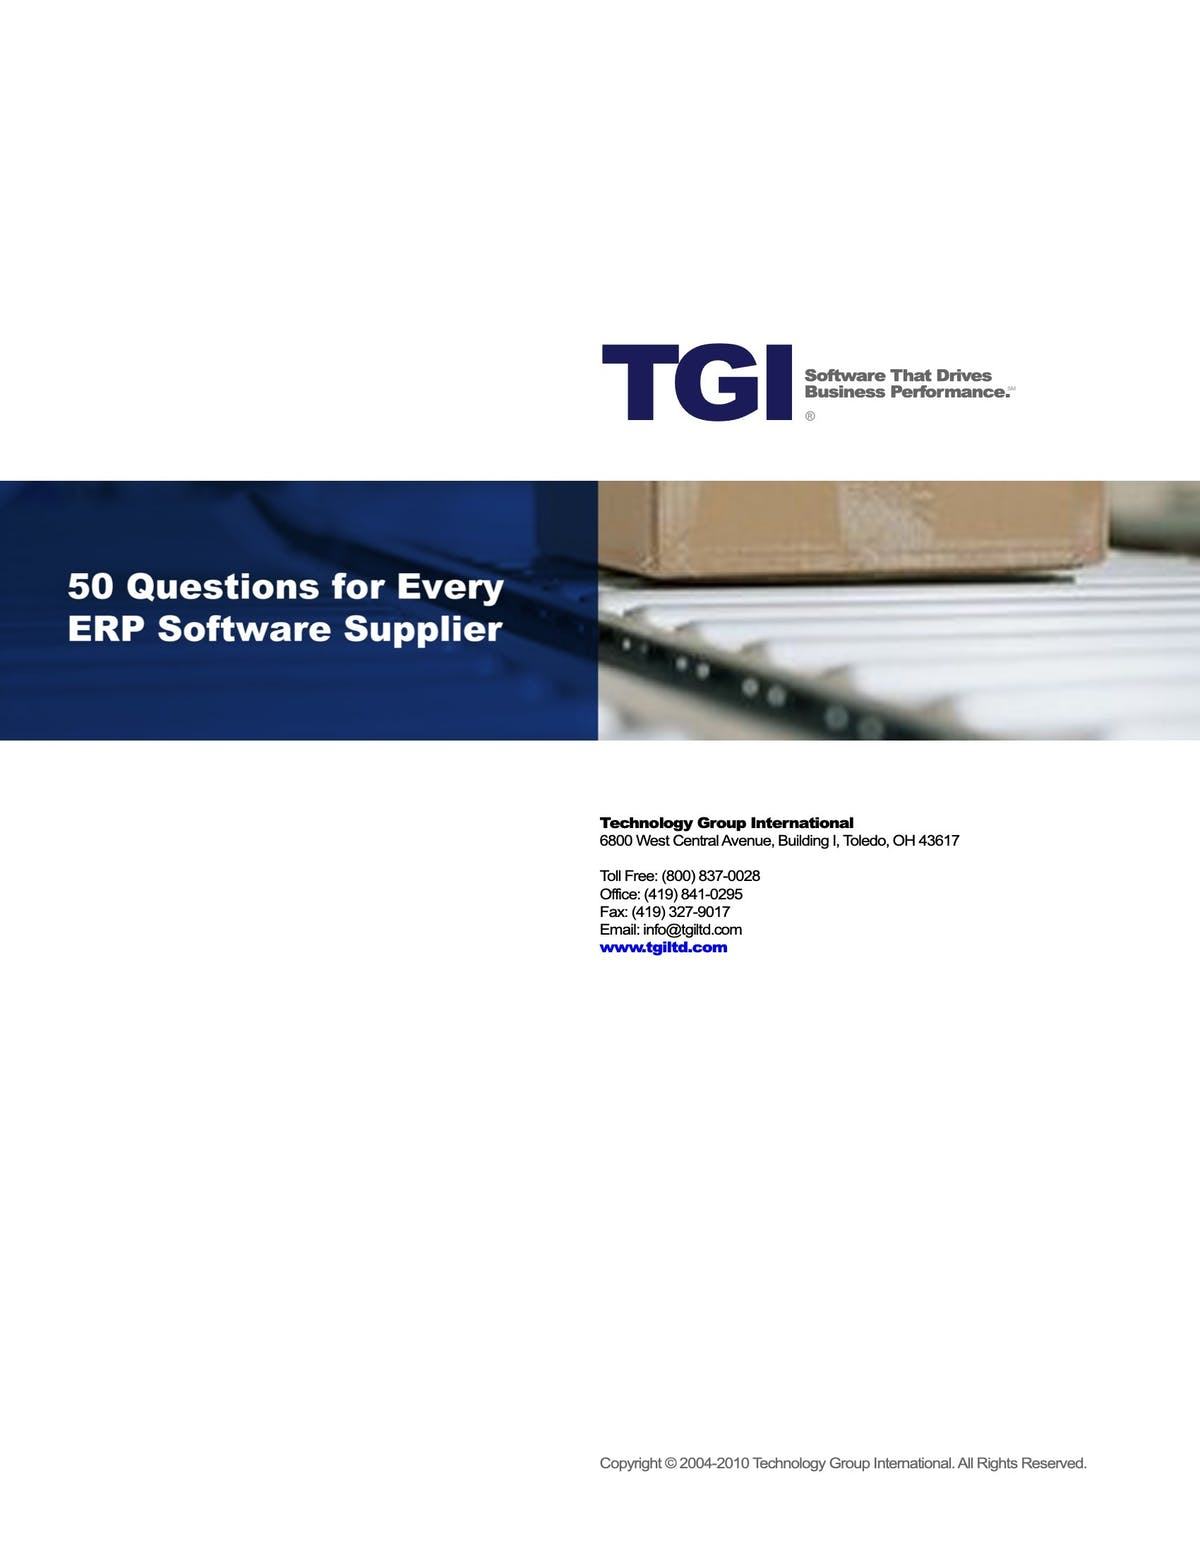 Enterprise 21 ERP White Paper - 50 Questions for Every ERP Software Supplier